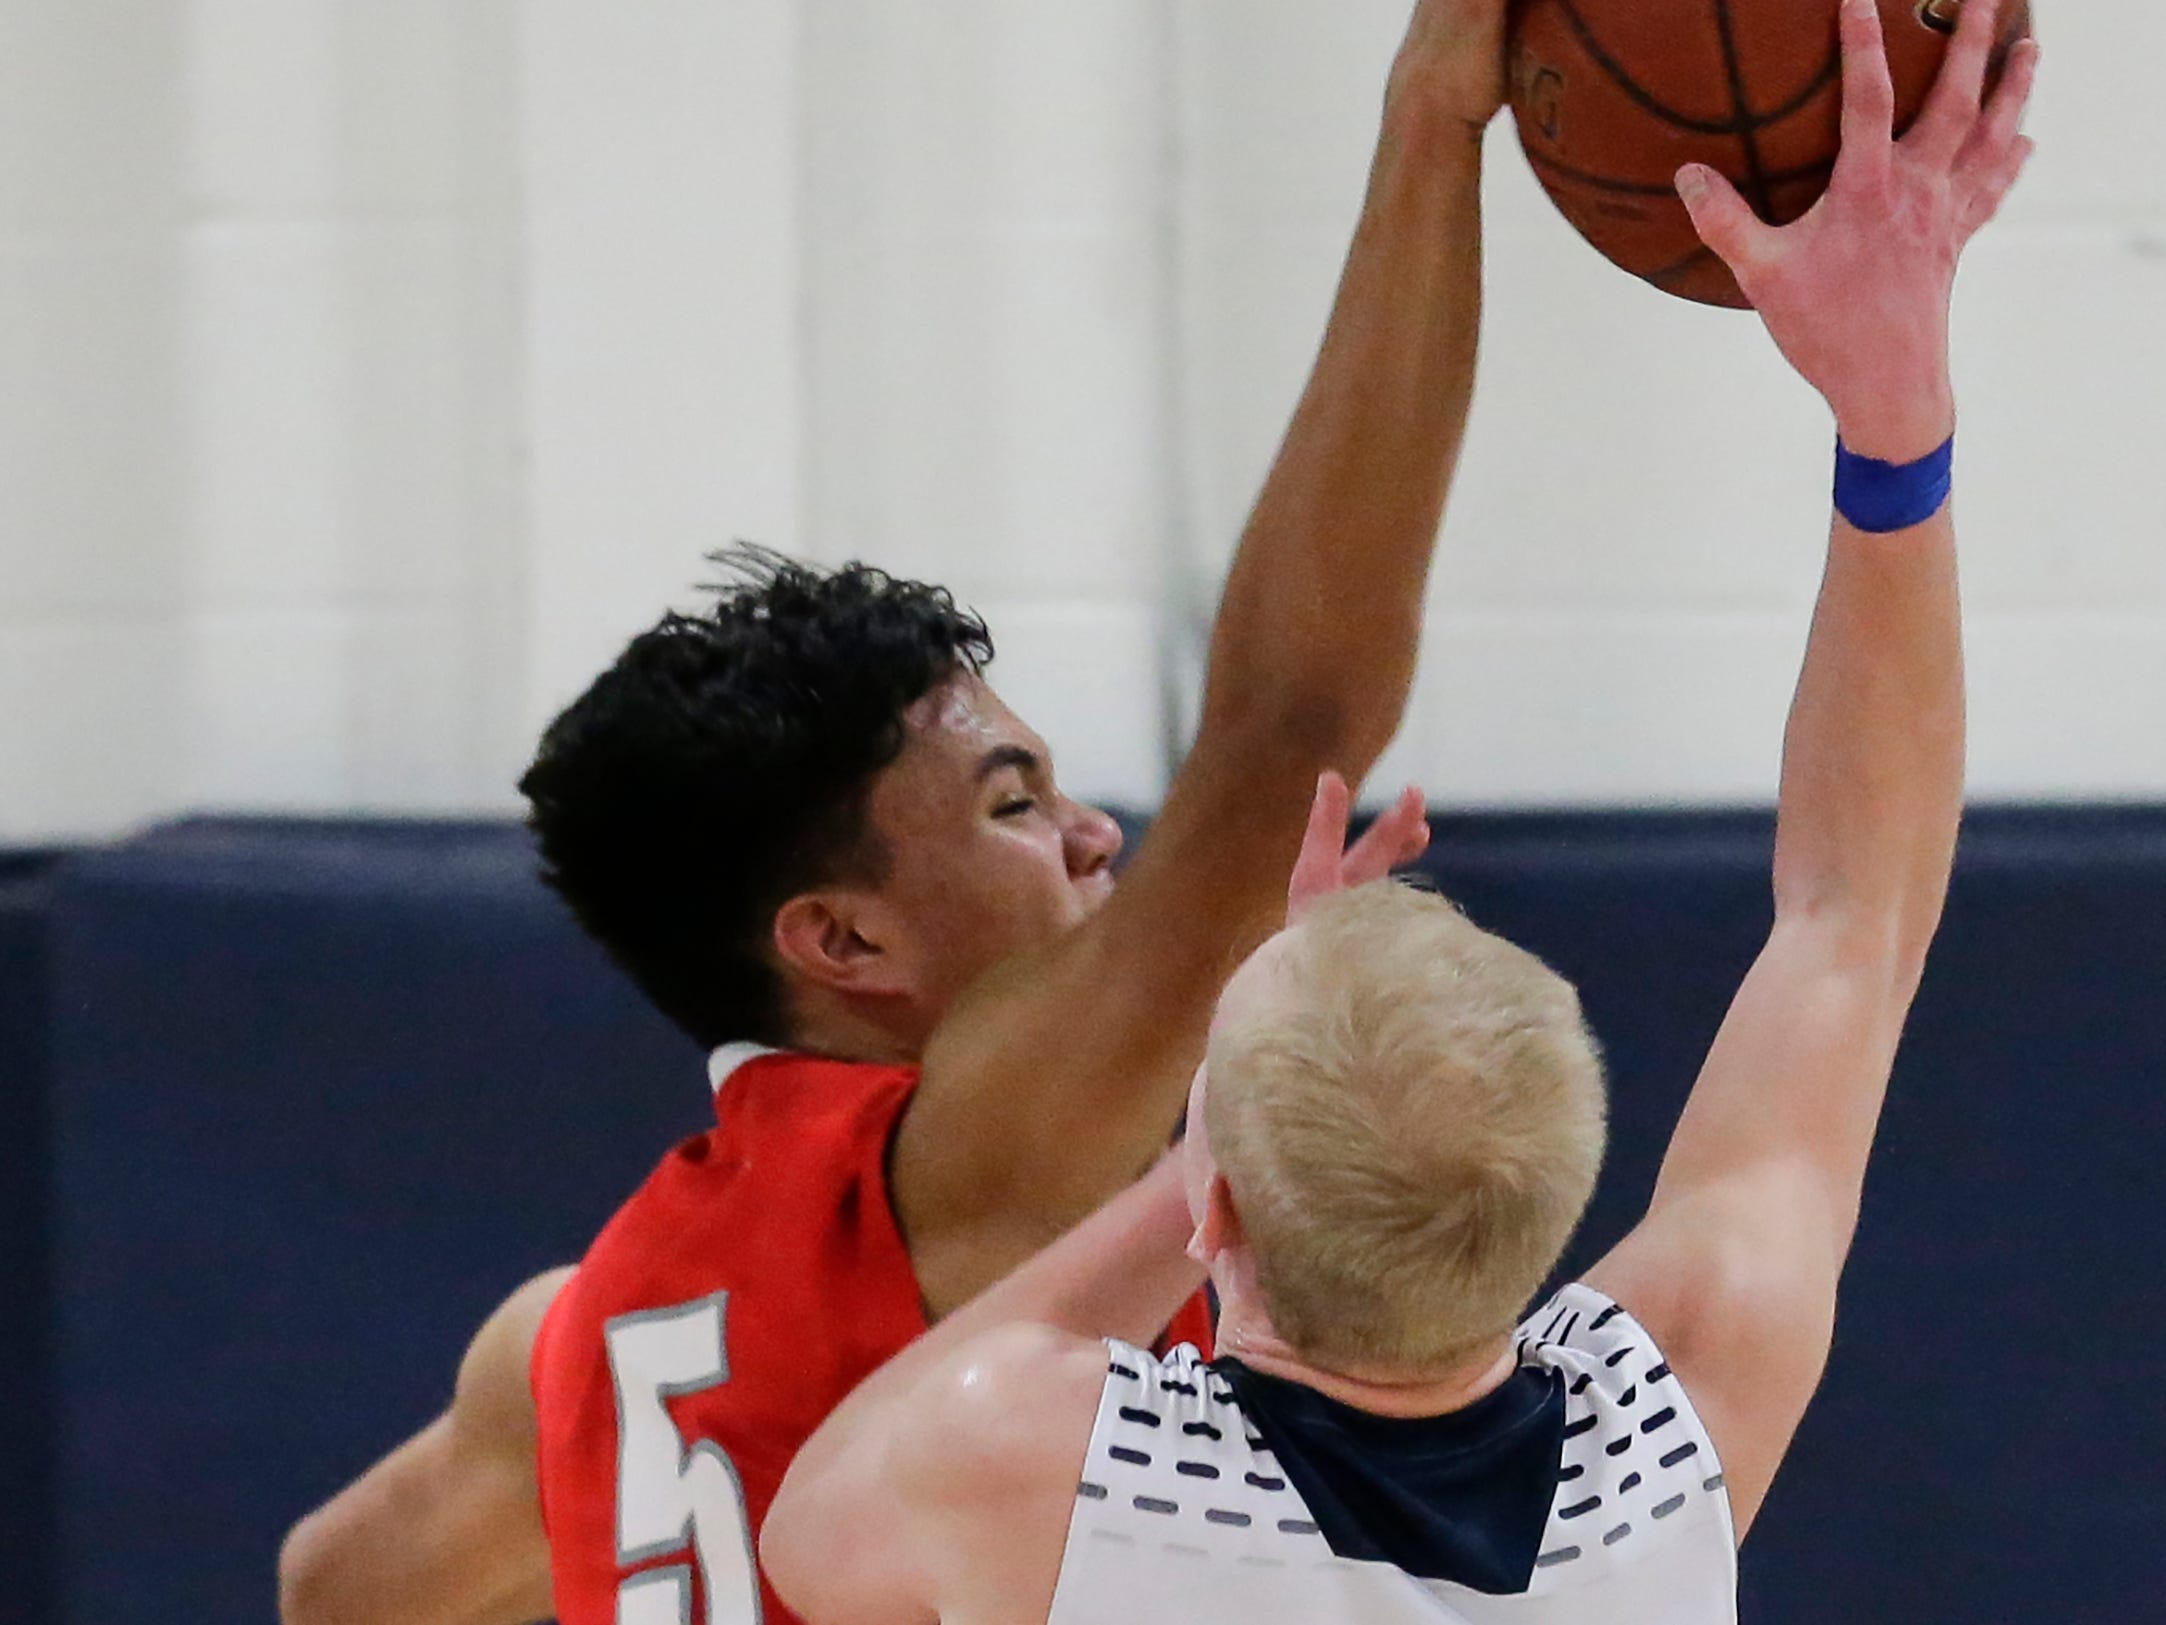 Manitowoc Lutheran's Santana Lomibao (5) blocks a shot from Roncalli's Bryce Pautz (4) during a WIAA Division 4 regional semifinal game at Roncalli High School Friday, March 1, 2019, in Manitowoc, Wis. Joshua Clark/USA TODAY NETWORK-Wisconsin